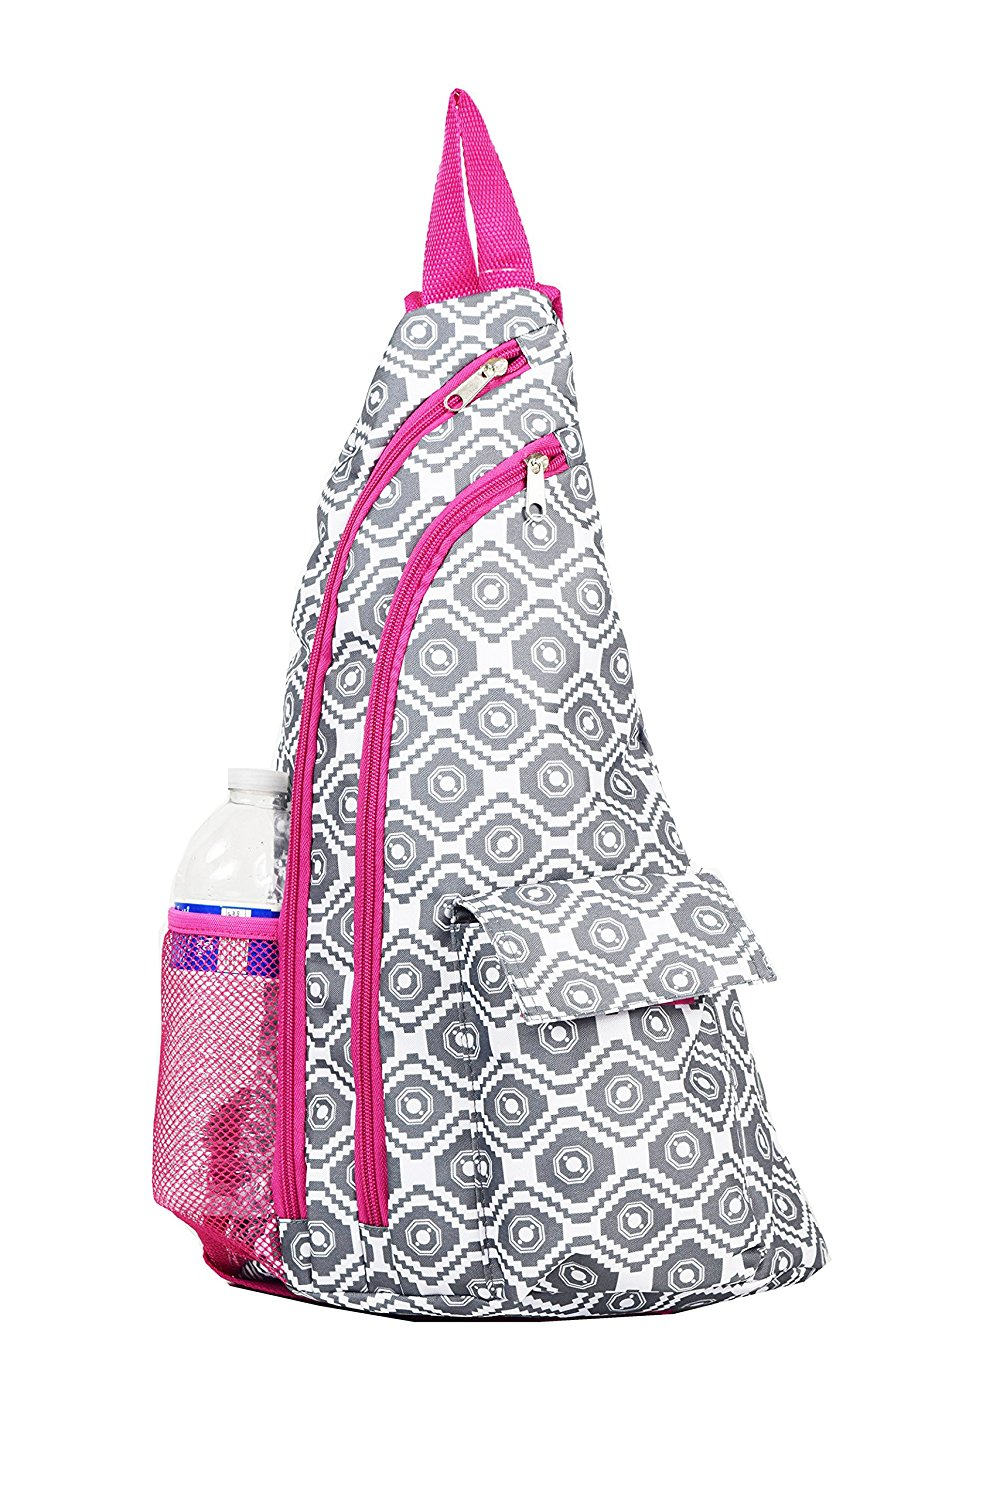 Get Quotations · BB-18-GREY-P Sling Backpack Geometric Pattern Design Grey  pink 5ba1d3aff521f